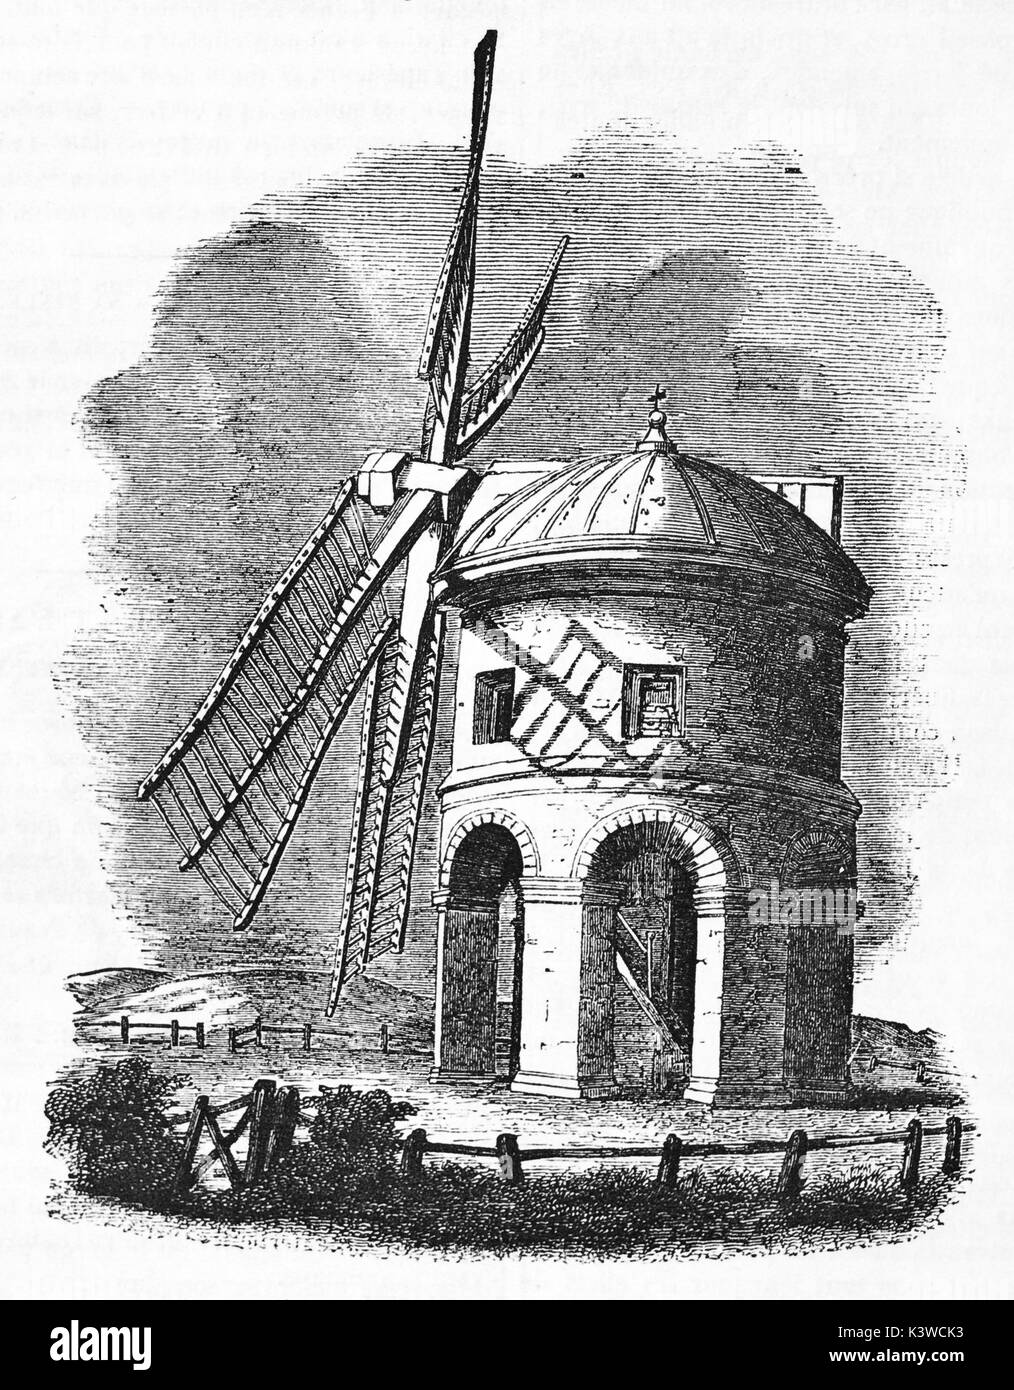 Old illustration of Chesterton windmill, stone tower windmill with arched base in Warwickshire, England. By unidentified author, published on Magasin Pittoresque, Paris, 1841 - Stock Image